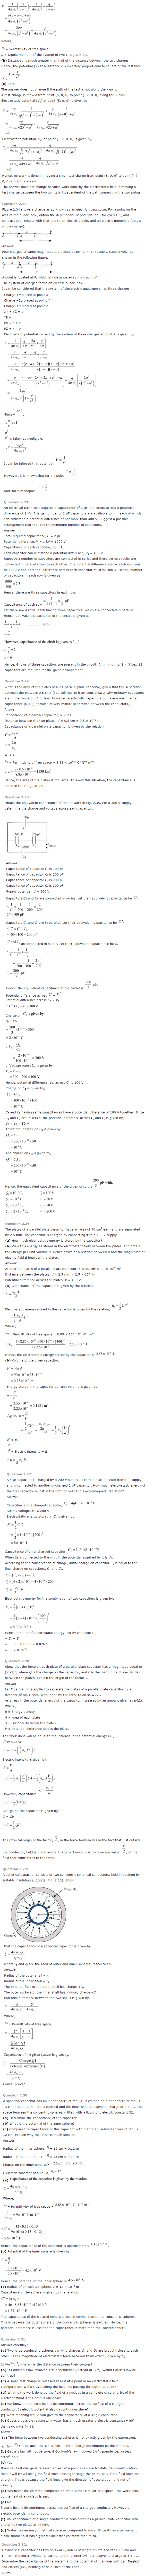 NCERT Solutions for Class 12th Physics